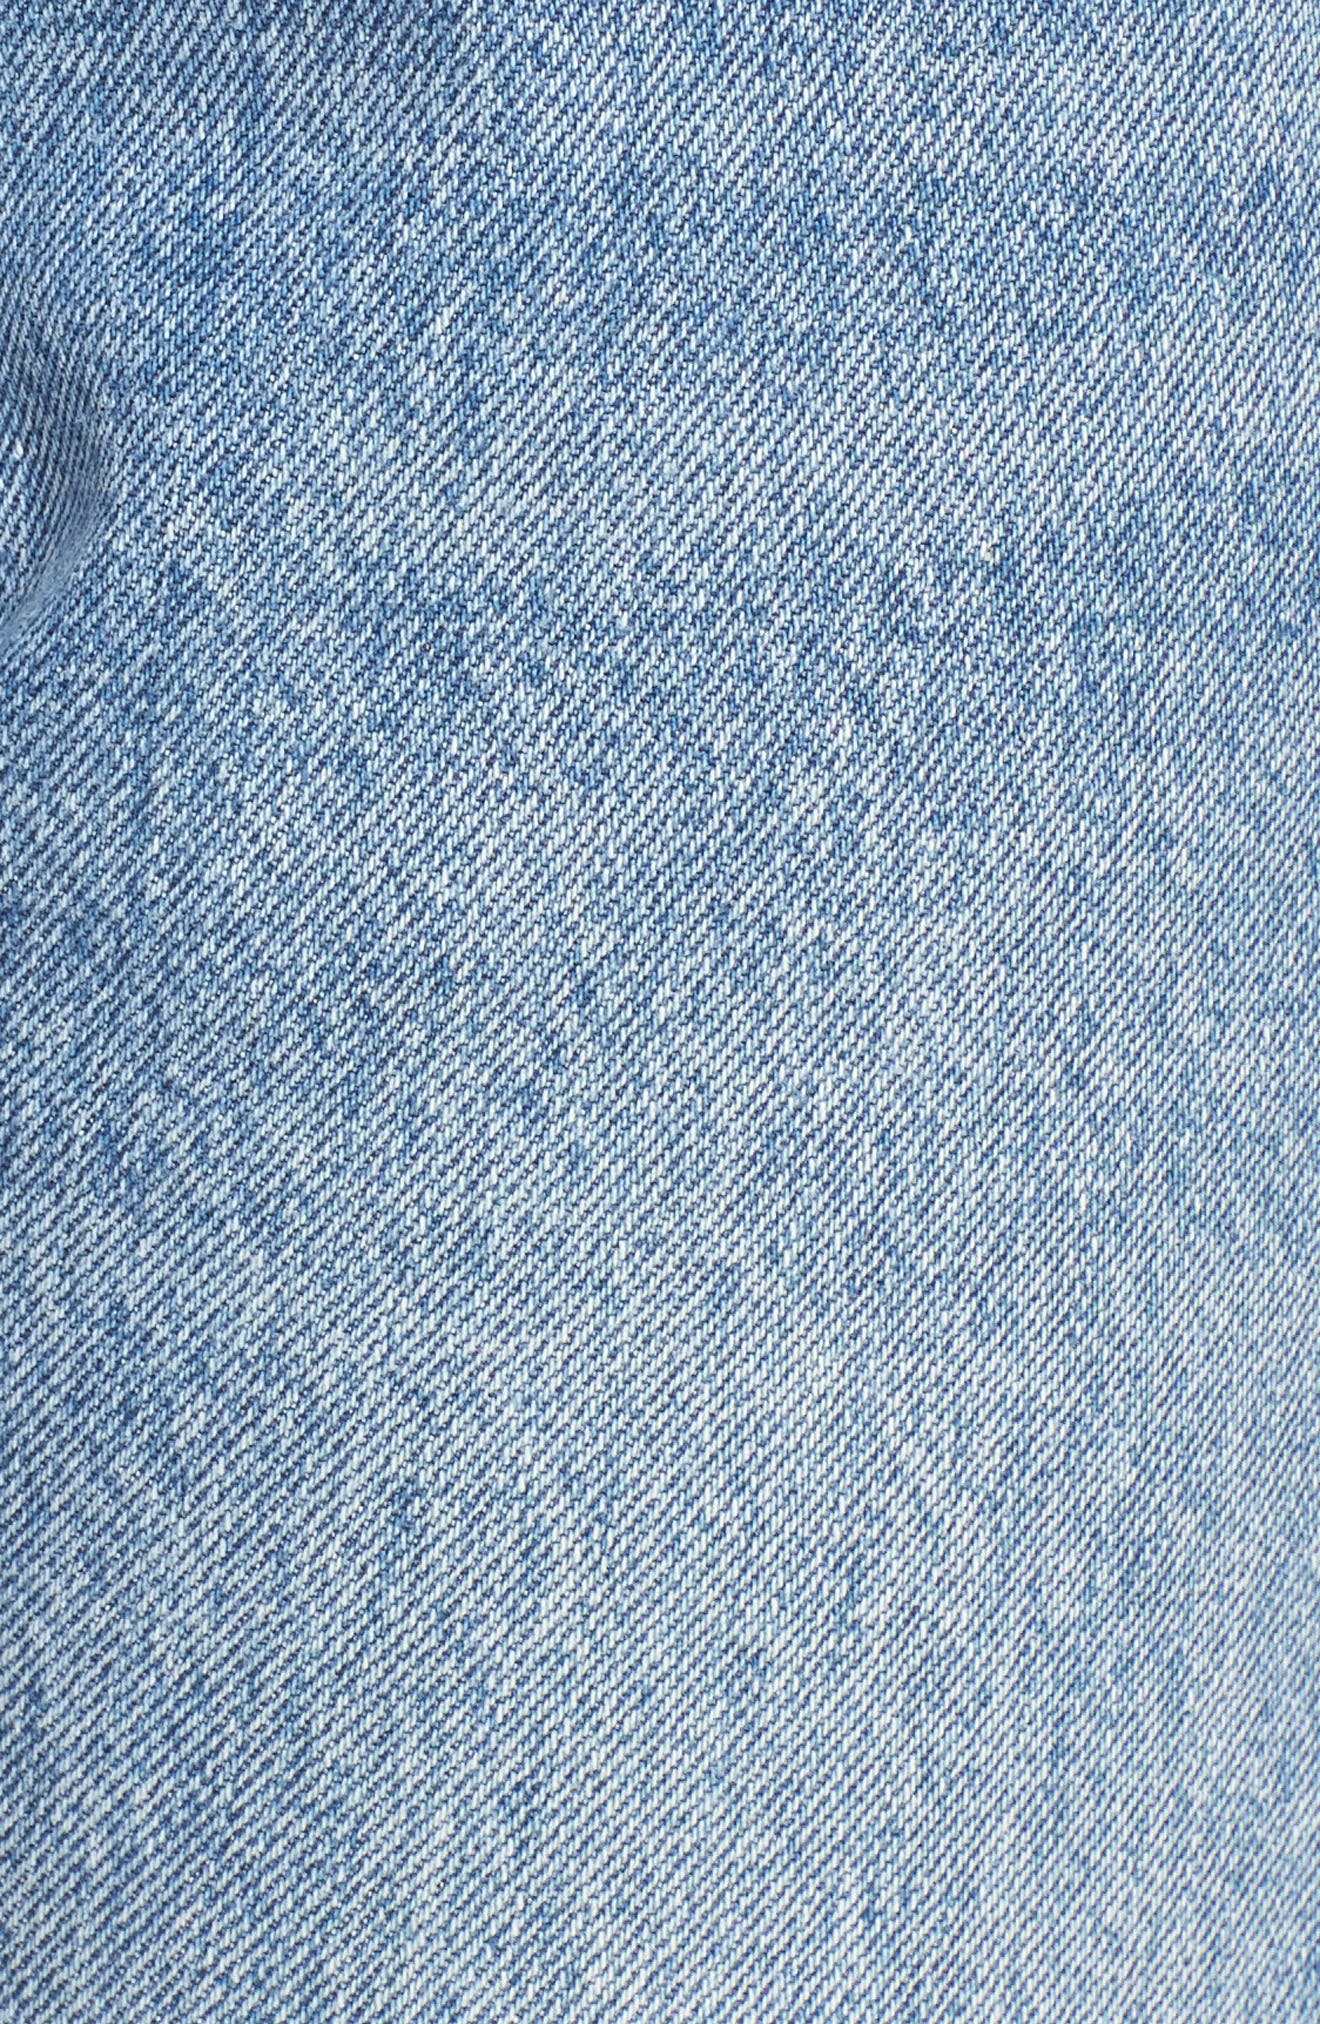 ,                             Levis<sup>®</sup> 501 Ripped Skinny Jeans,                             Alternate thumbnail 5, color,                             400